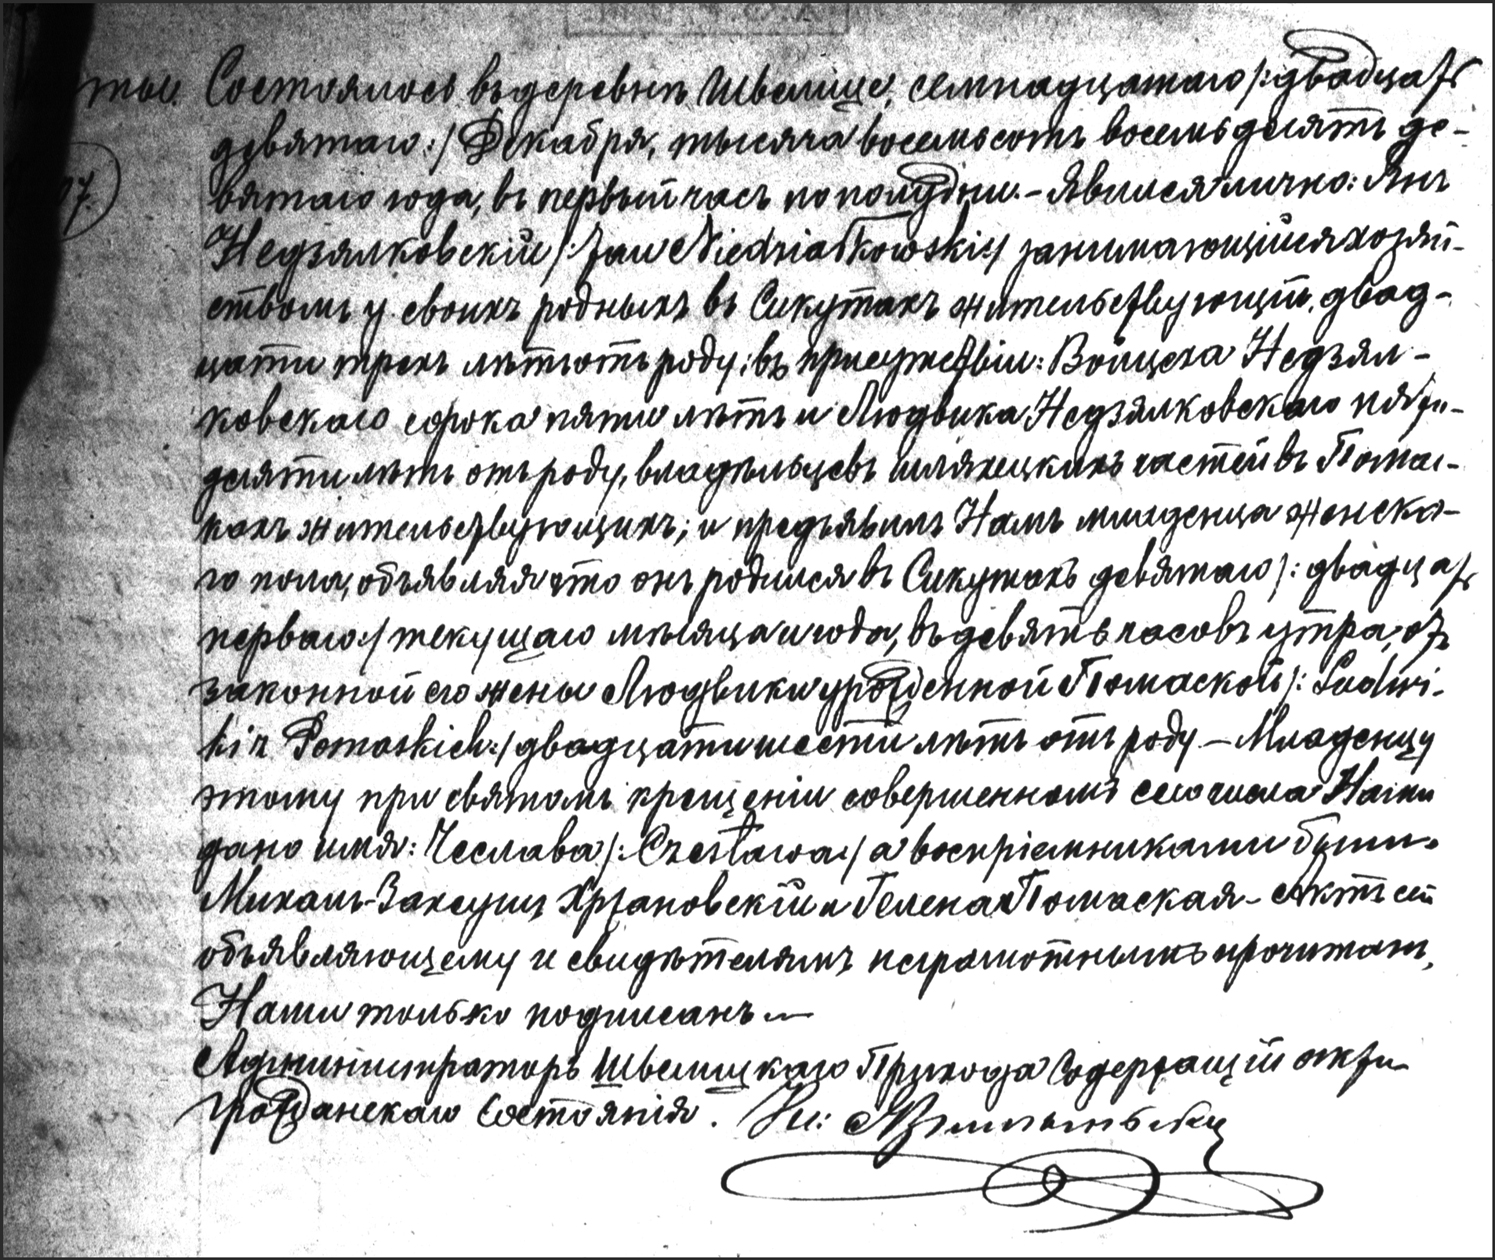 The Birth and Baptismal Record of Czeslawa Niedzialkowska - 1889